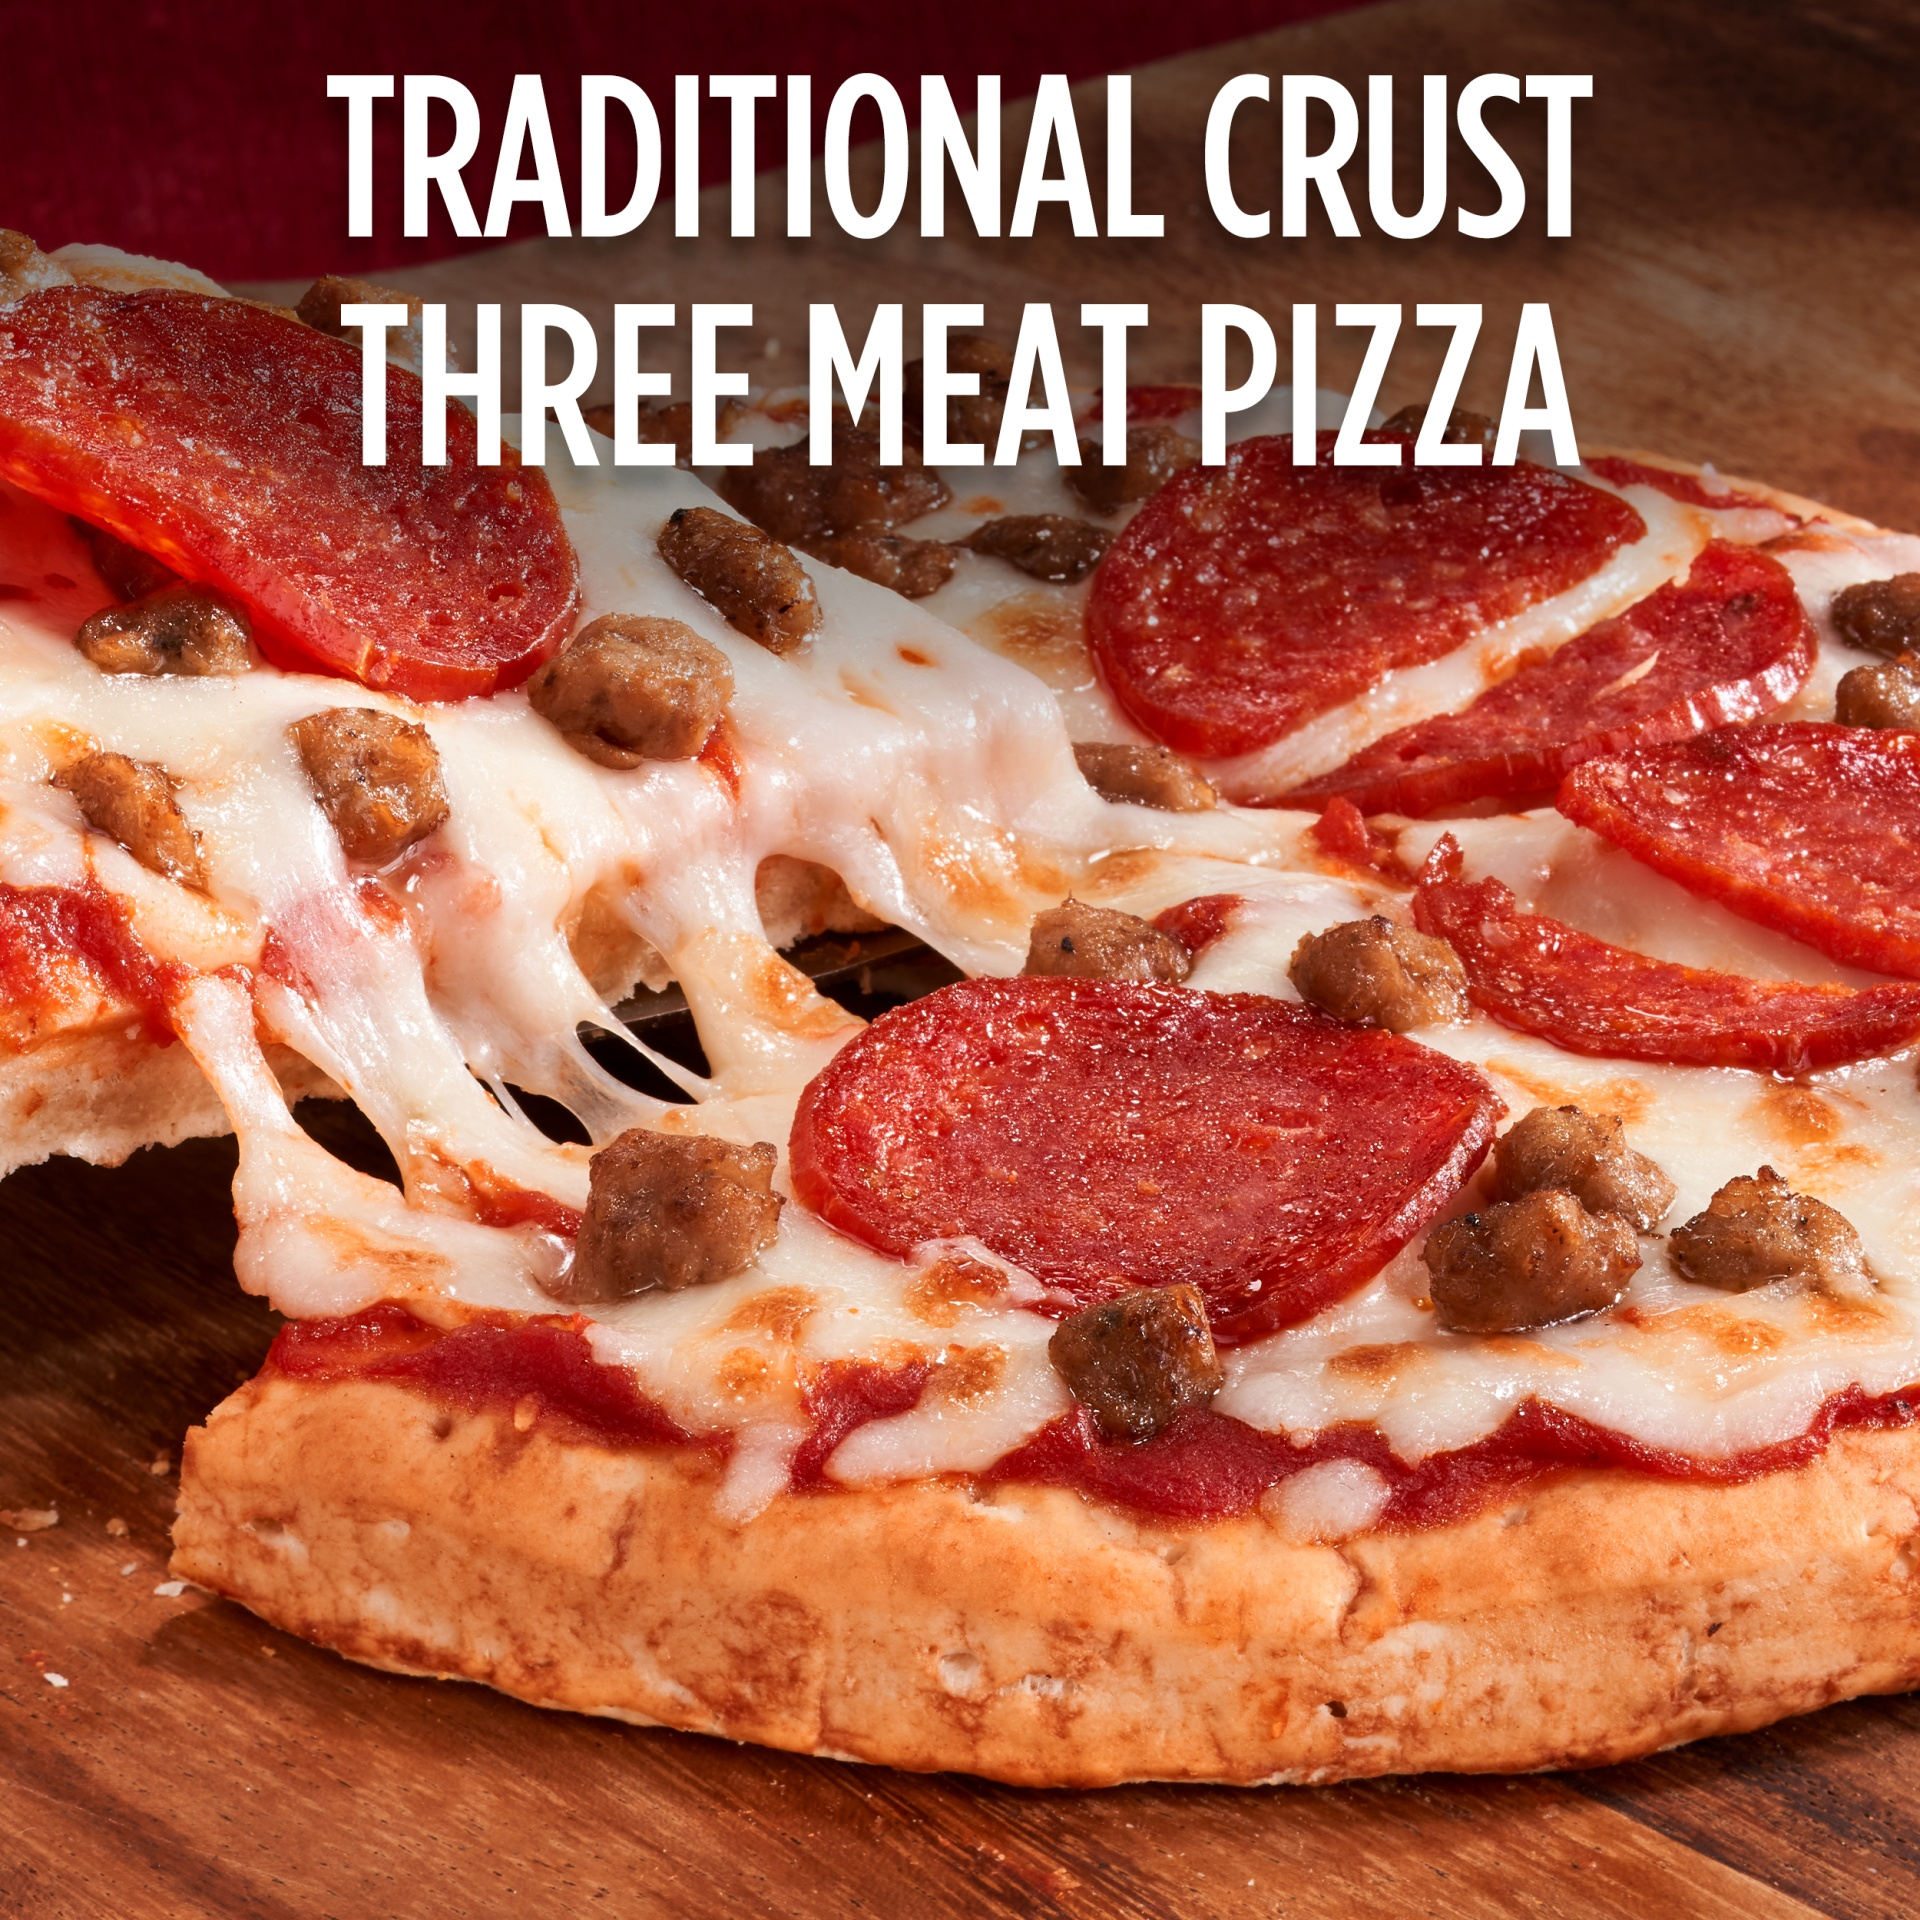 slide 3 of 13, DiGiorno Three Meat Traditional Crust Pizza,